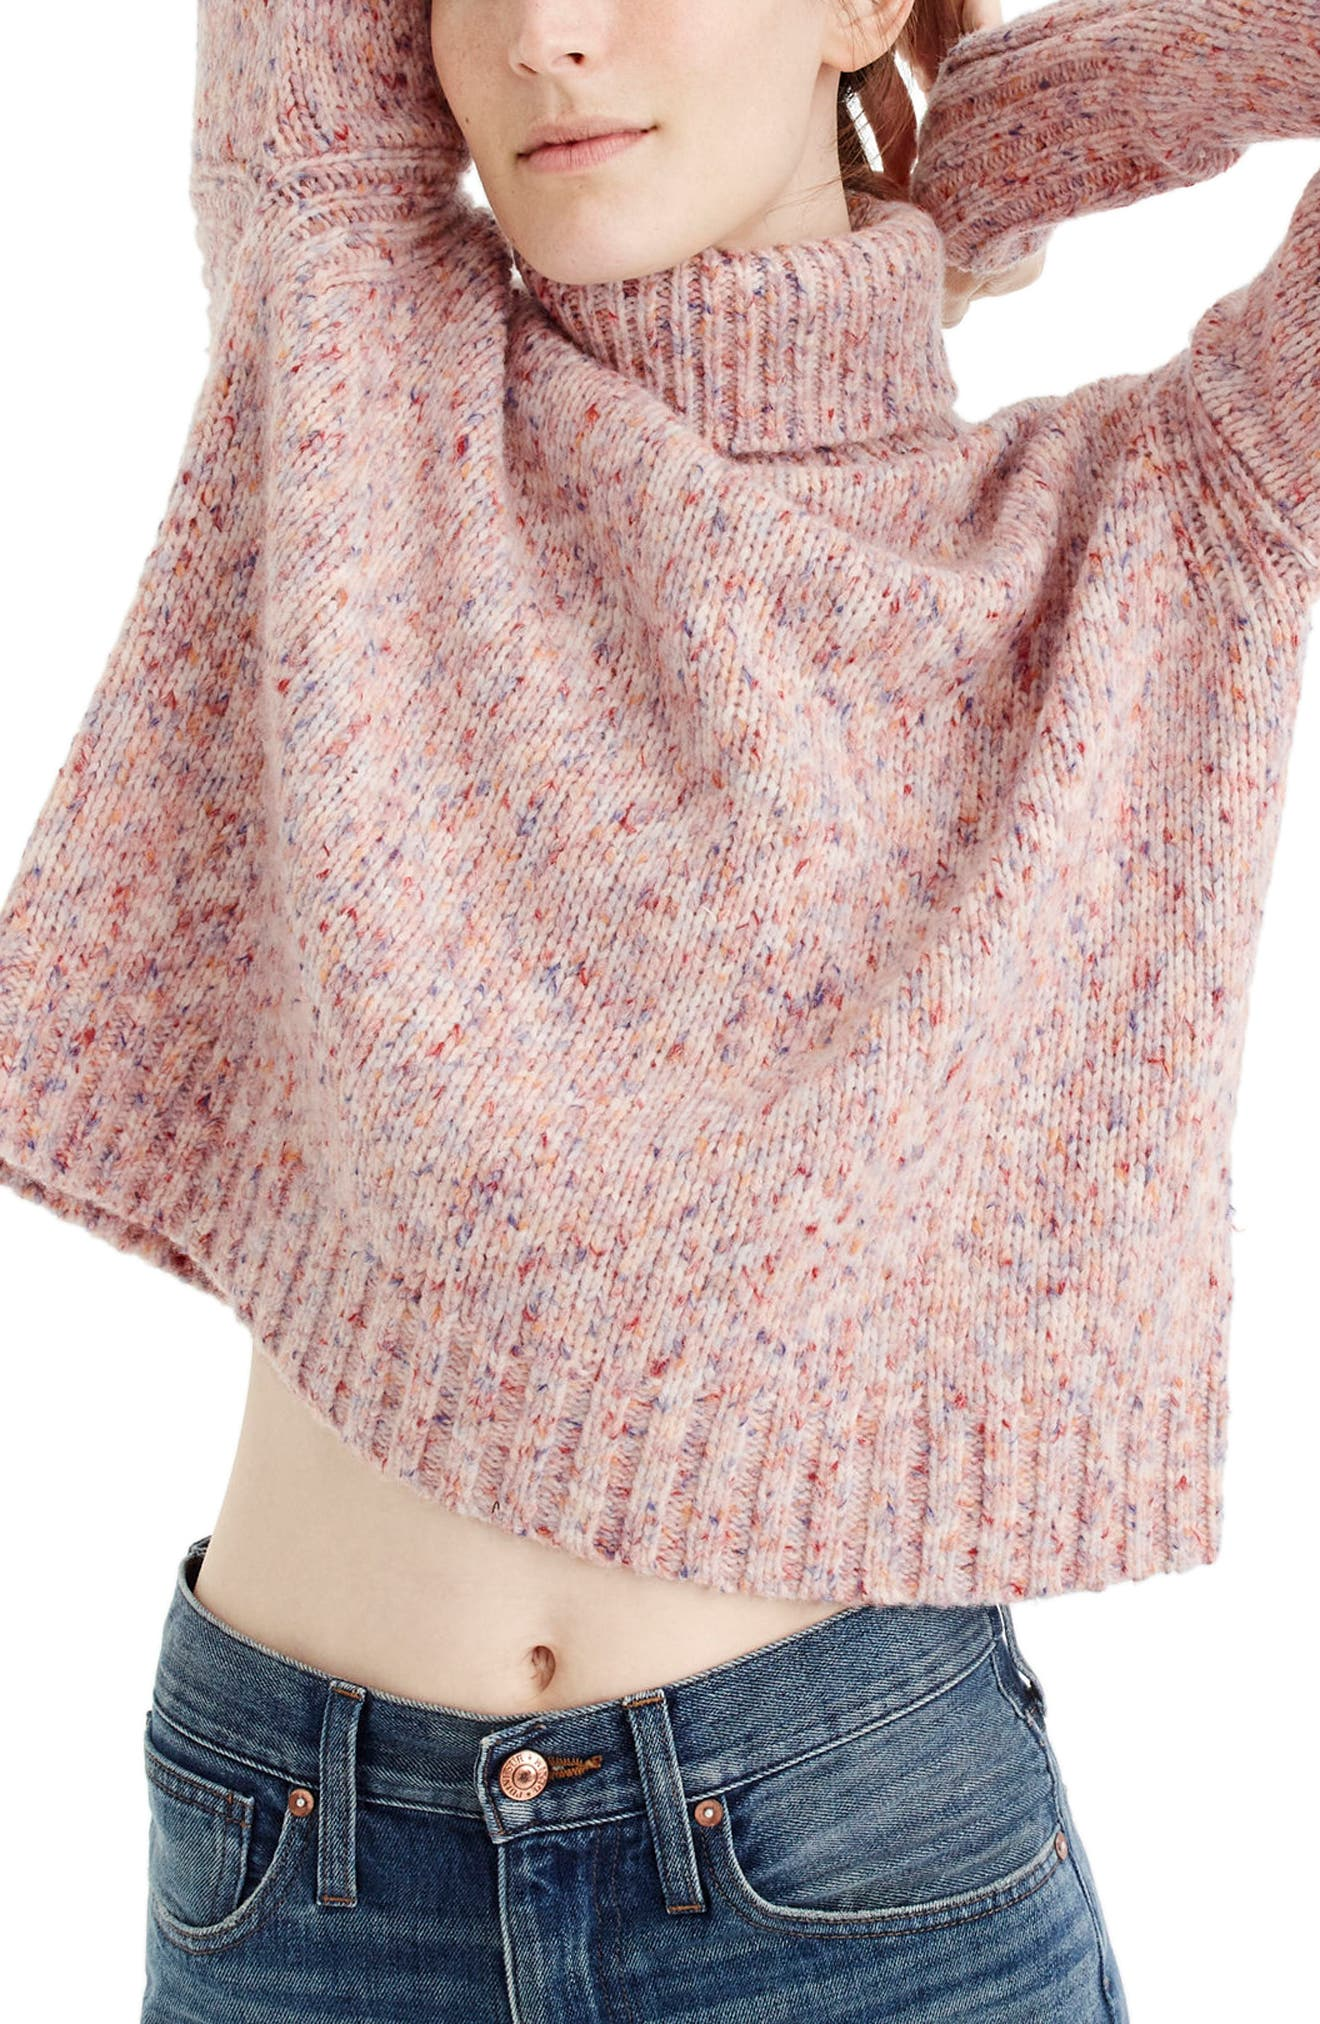 J.Crew Marled Wool Blend Turtleneck Sweater,                             Main thumbnail 1, color,                             Marled Confetti